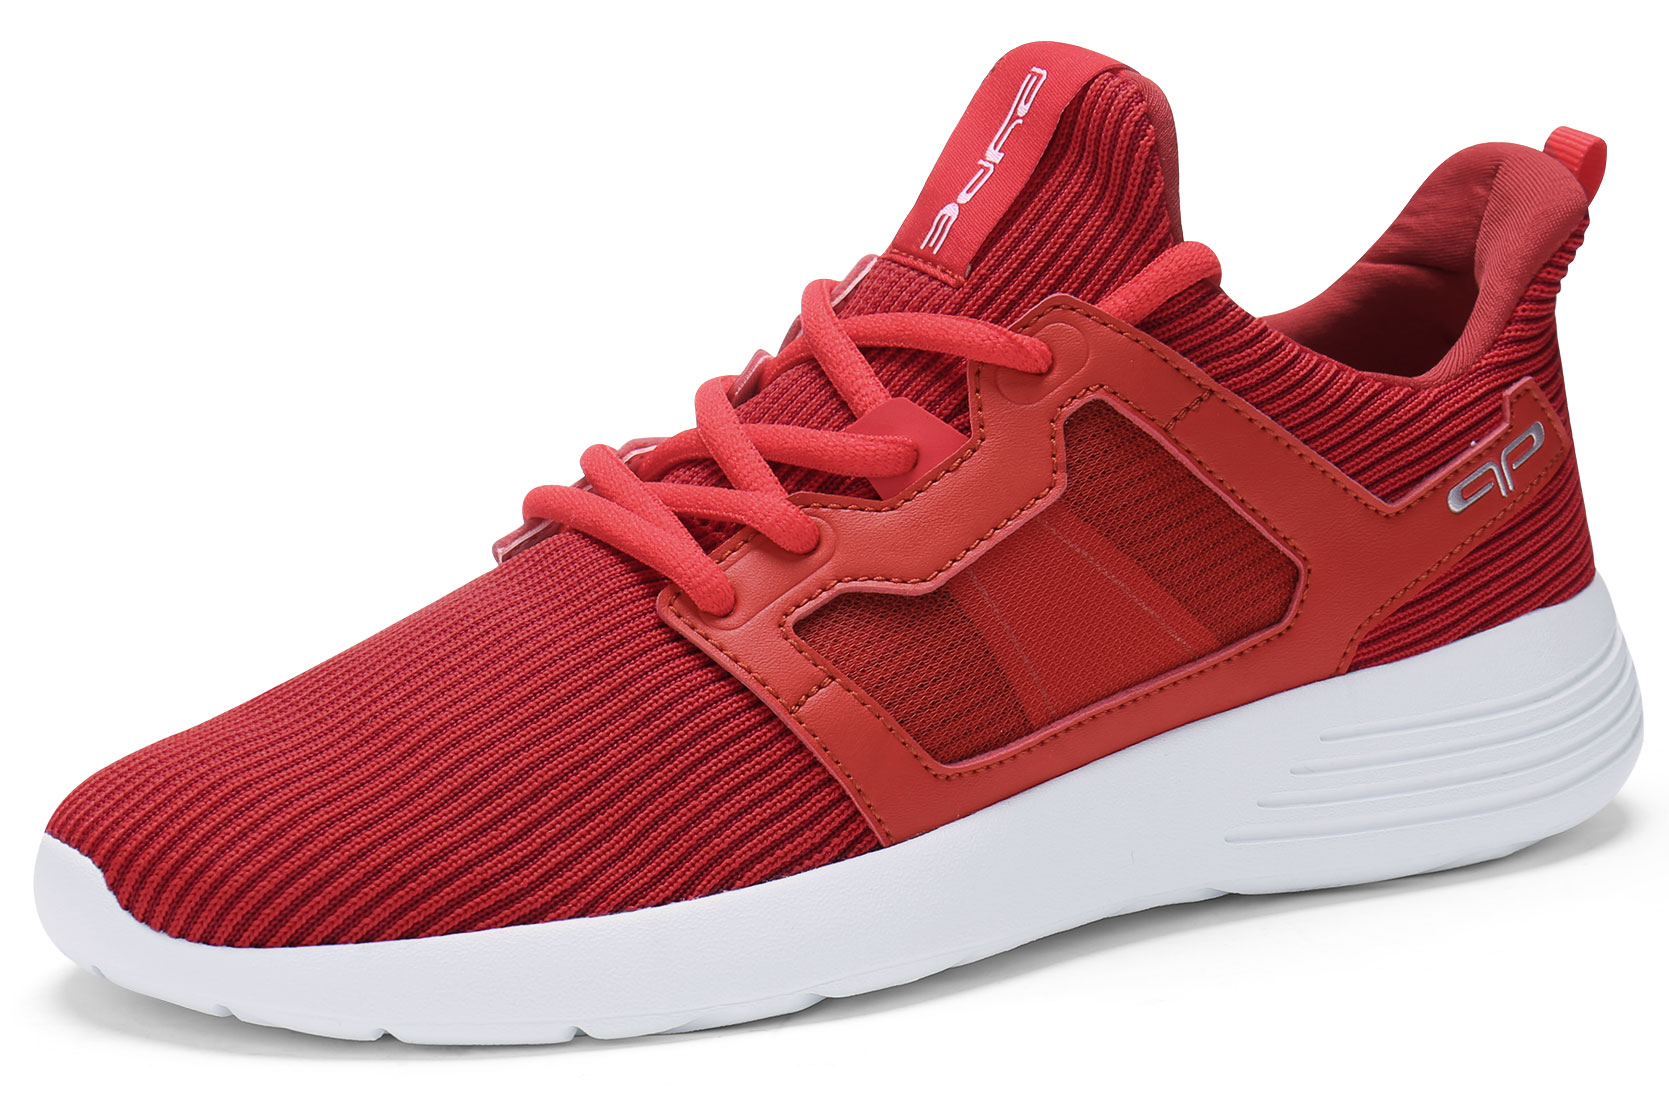 PYPE Women Lightweight Lace Up Mesh Training Sneakers Red US 8